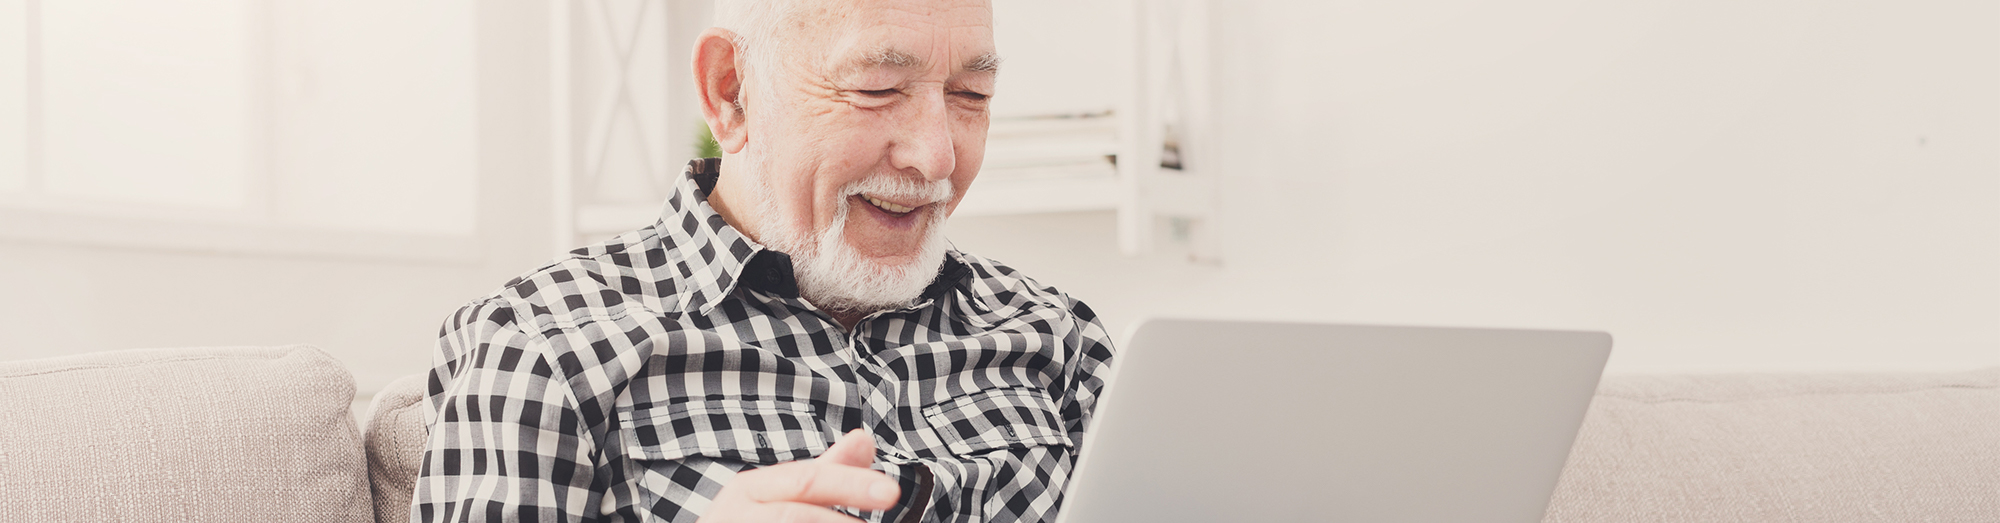 Male cancer patient using telehealth